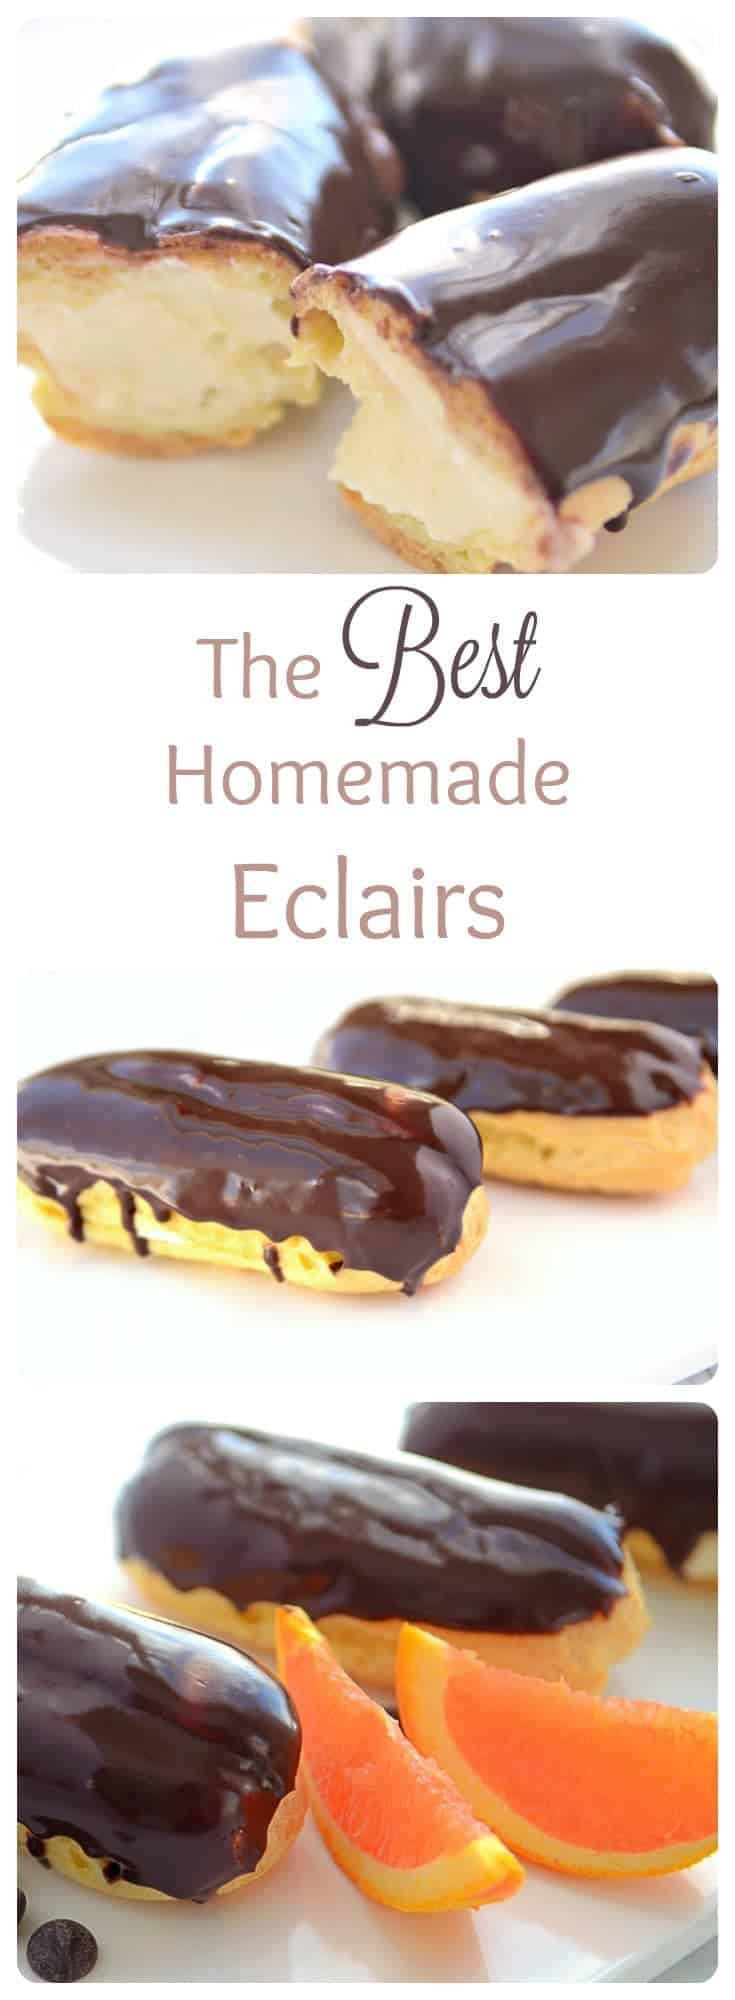 This is the best HOMEMADE eclair recipe. These chocolate eclairs are absolutely mouthwatering. You won't be able to stop eating this decadent dessert. French Eclairs are definitely a melt in your mouth delight.